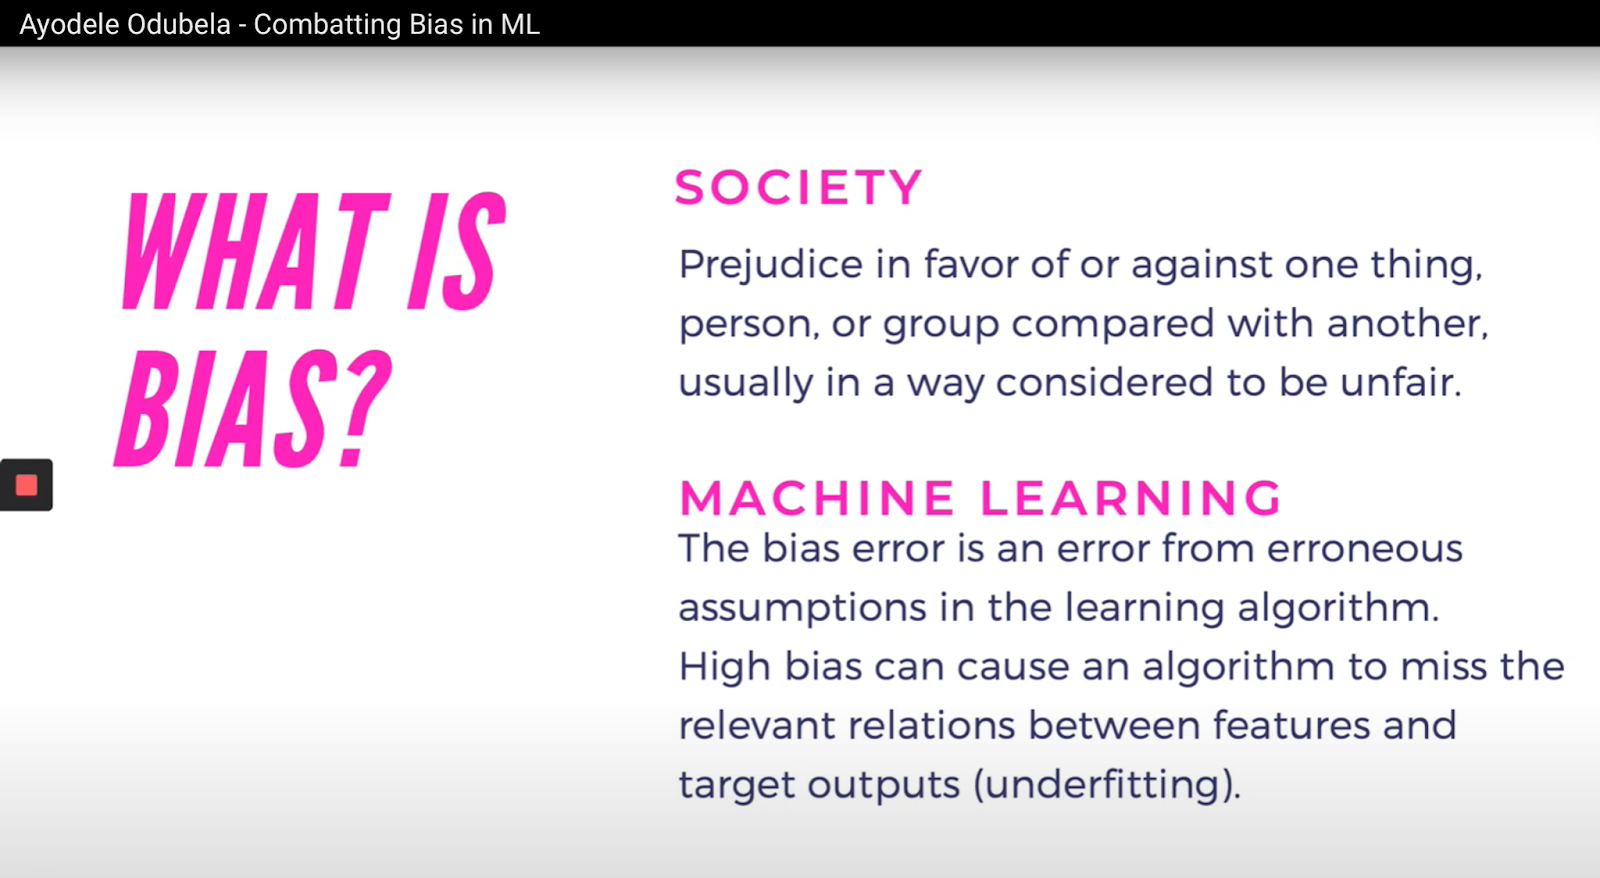 """Slide from Ayodele's """"Combating Bias in ML"""" talk, given during the 2020 Juneteenth Conference"""